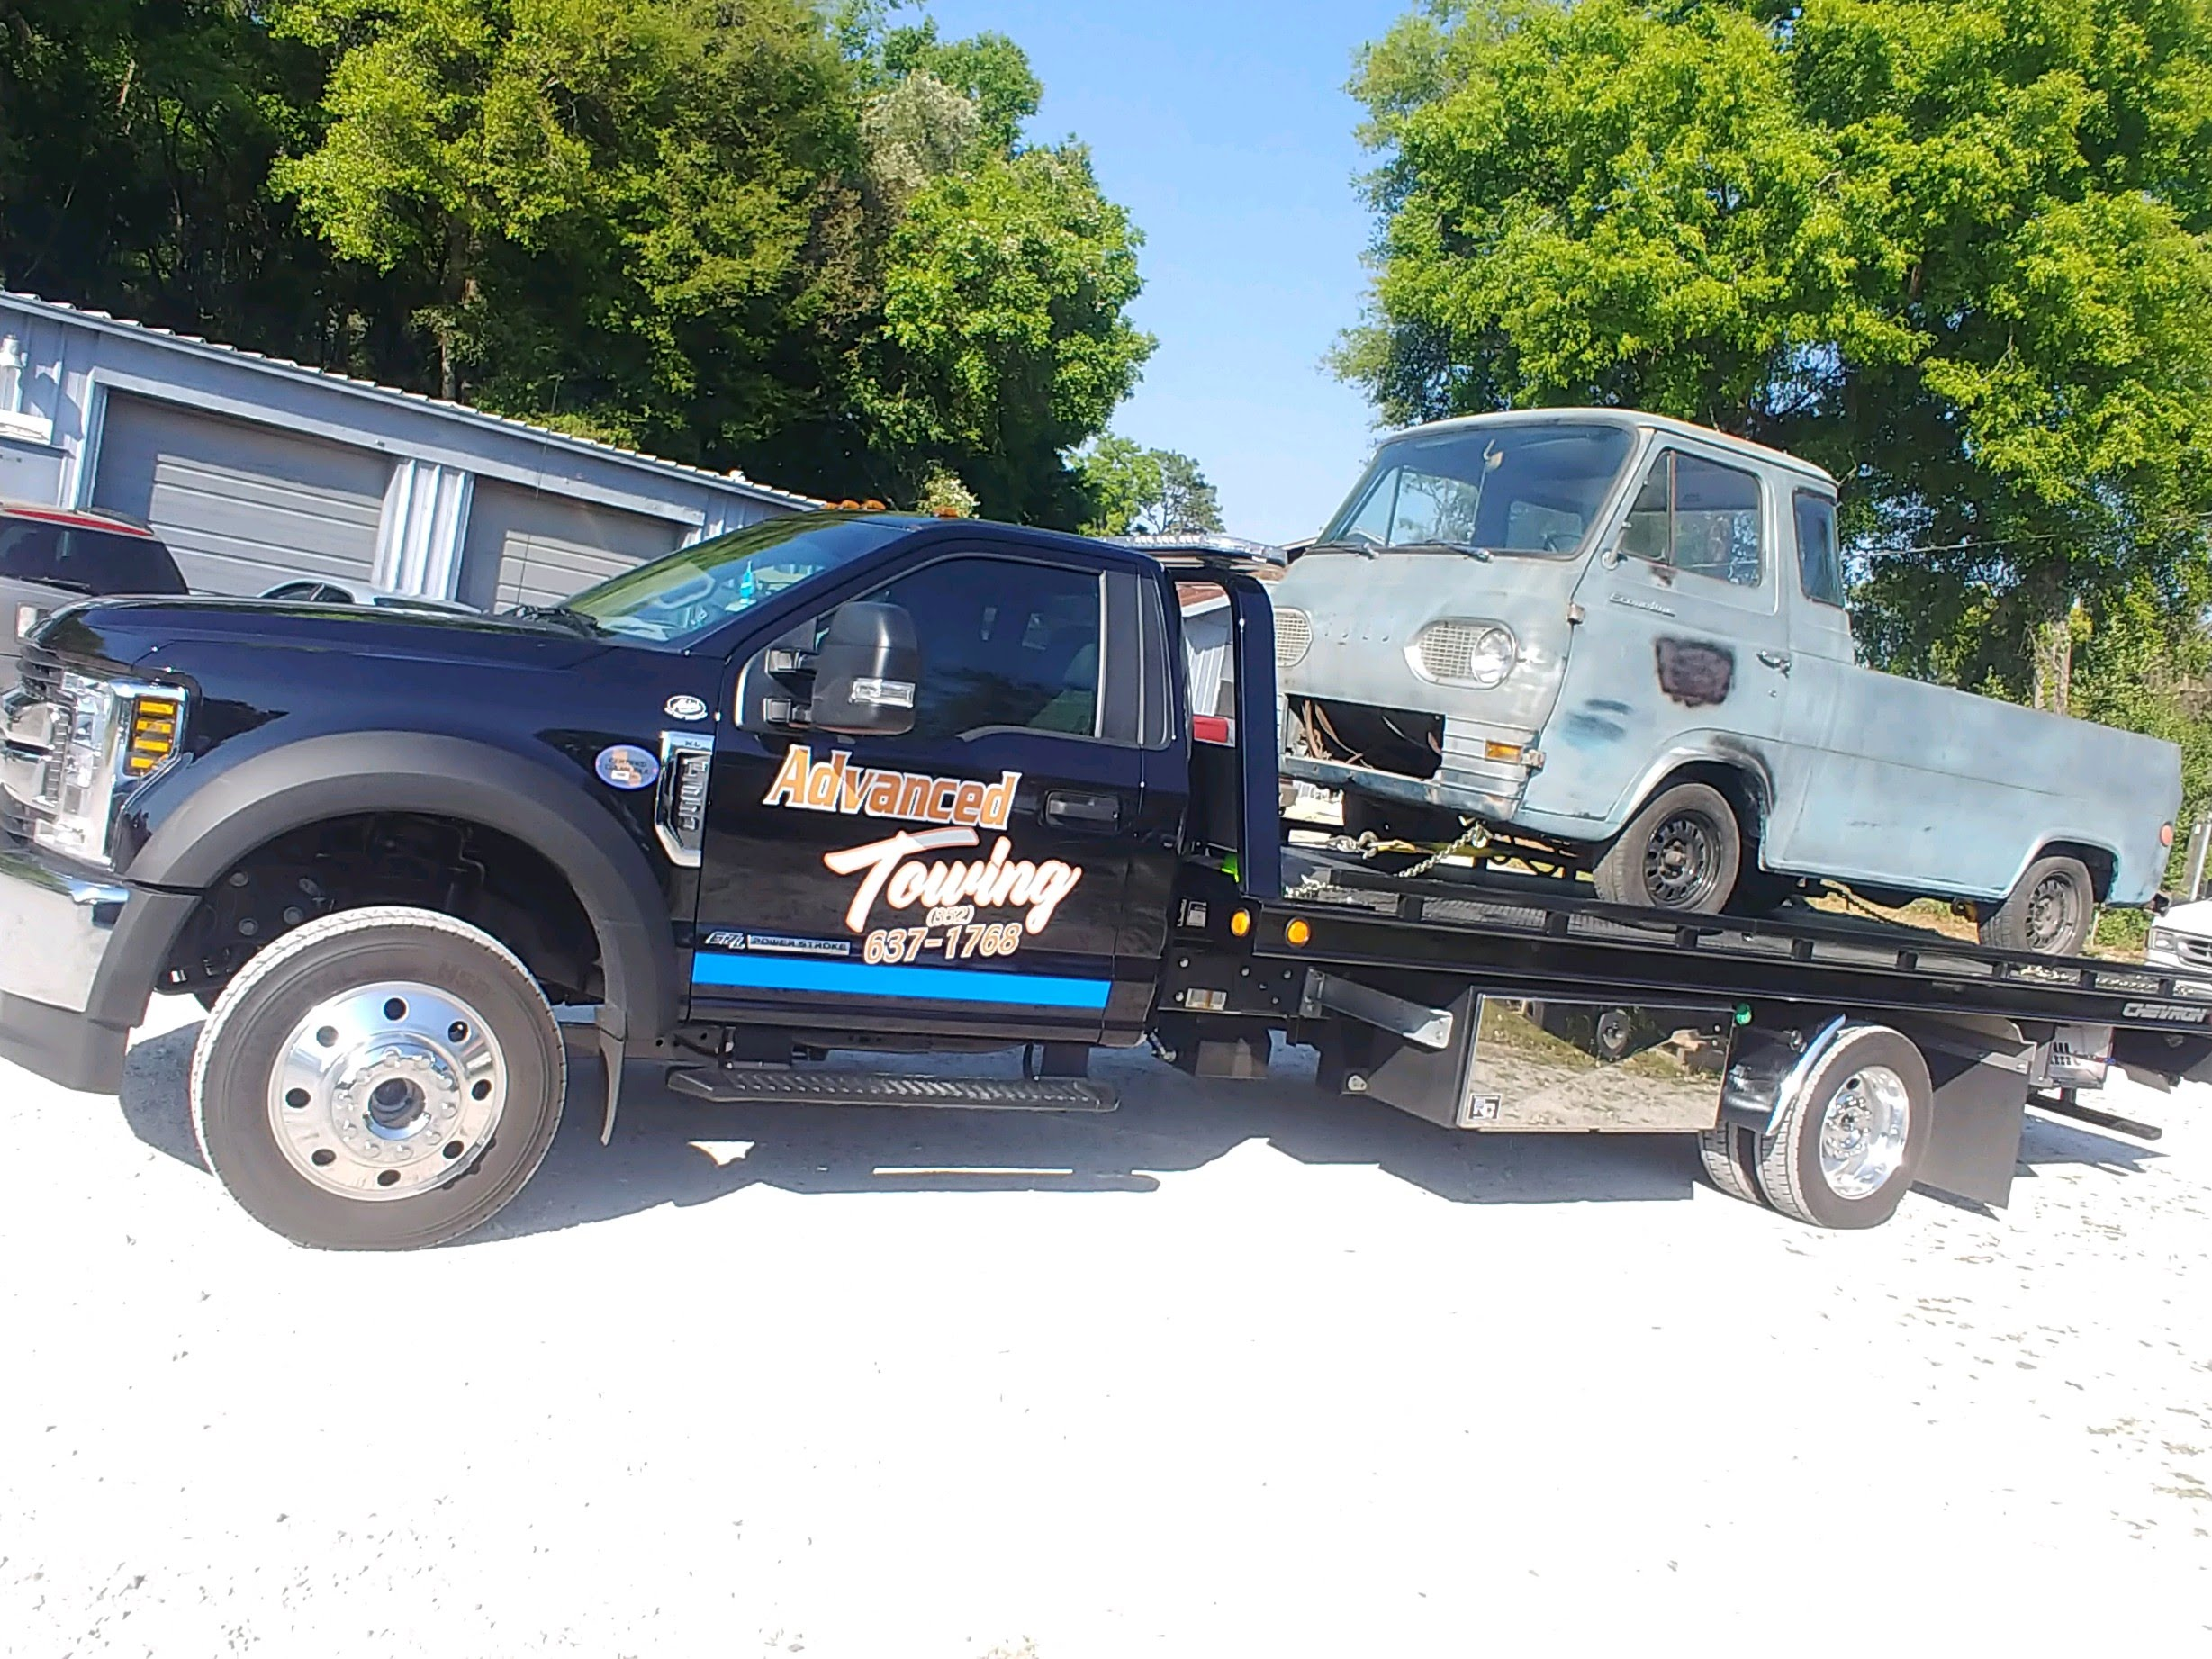 Advanced Towing image 41